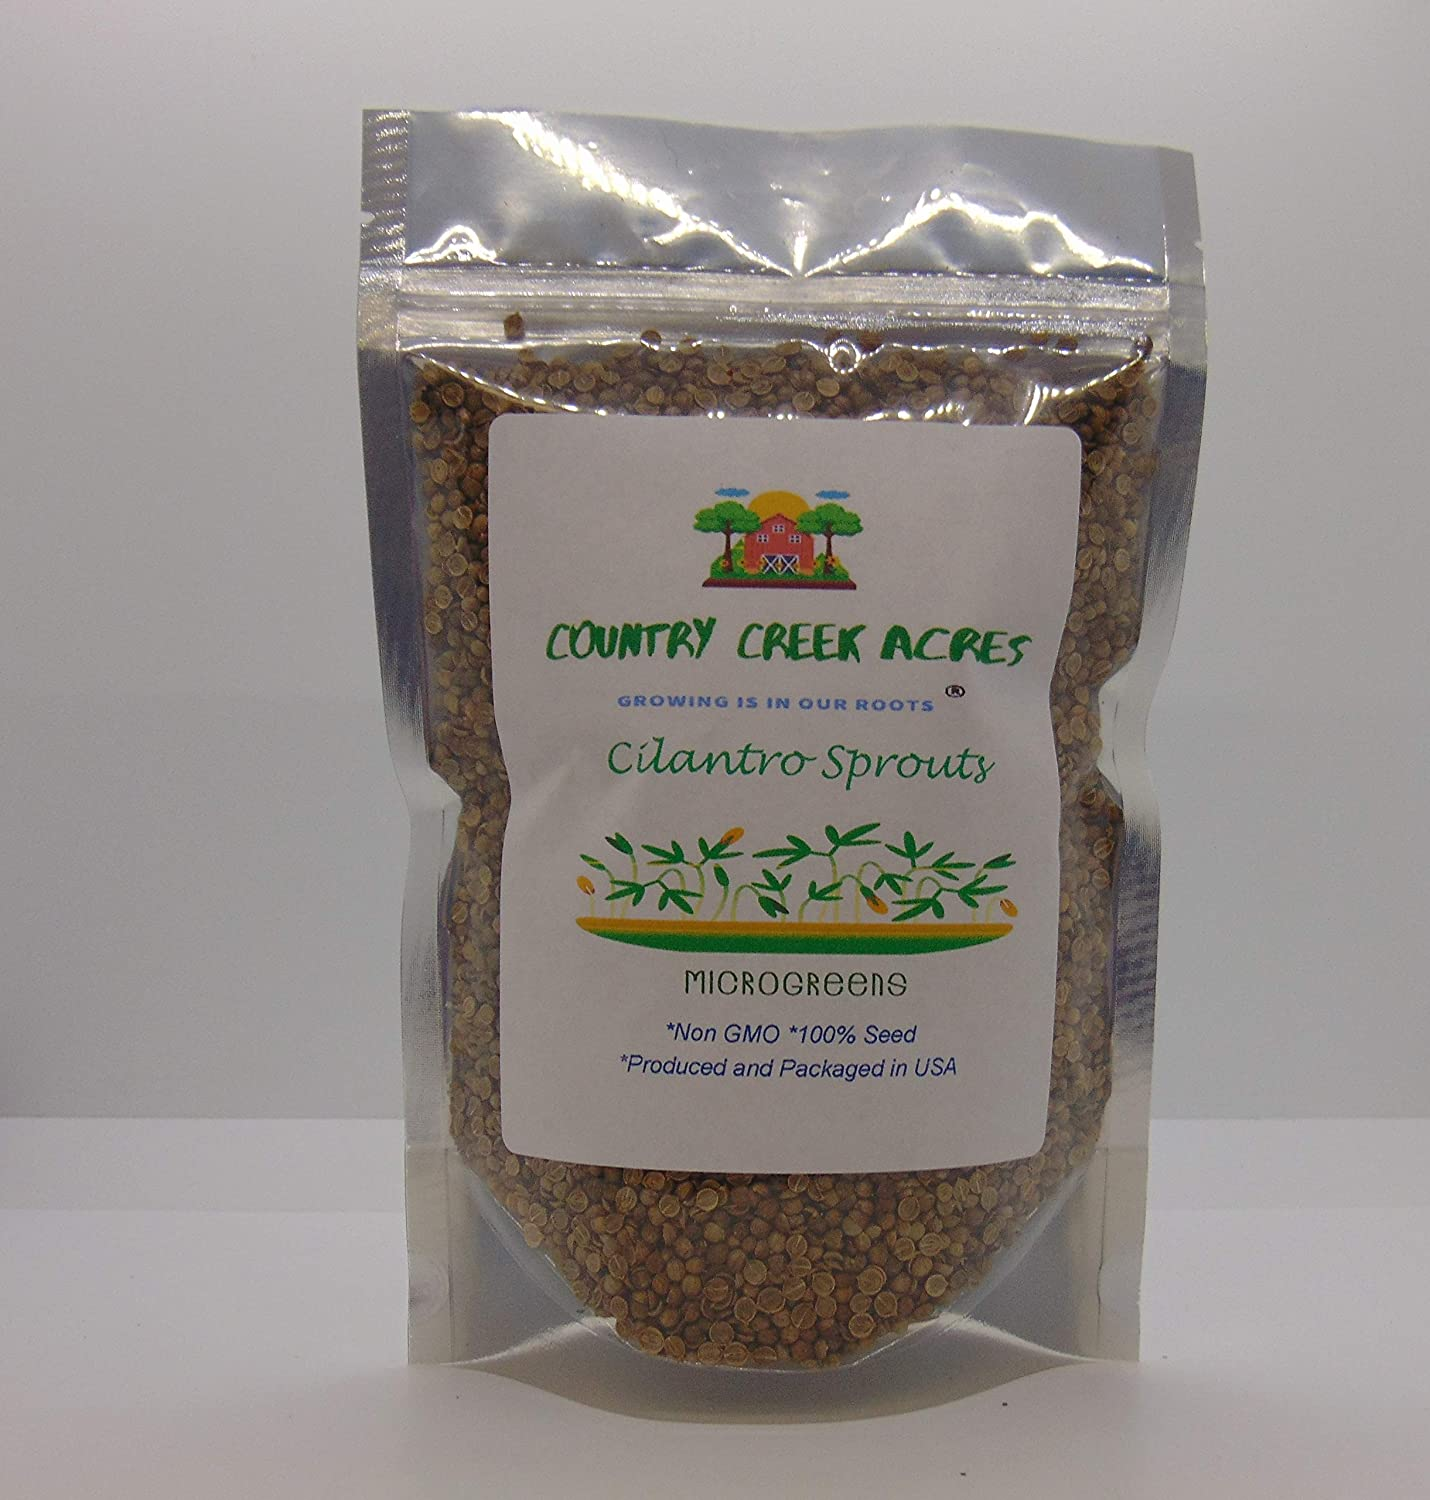 Cilantro Seed, Sprouting Seeds, Microgreen, Sprouting, 8 OZ, Non GMO - Country Creek Acres Brand - High Sprout Germination- Juicing, Gardening, Hydroponics, Growing Salad Sprouts